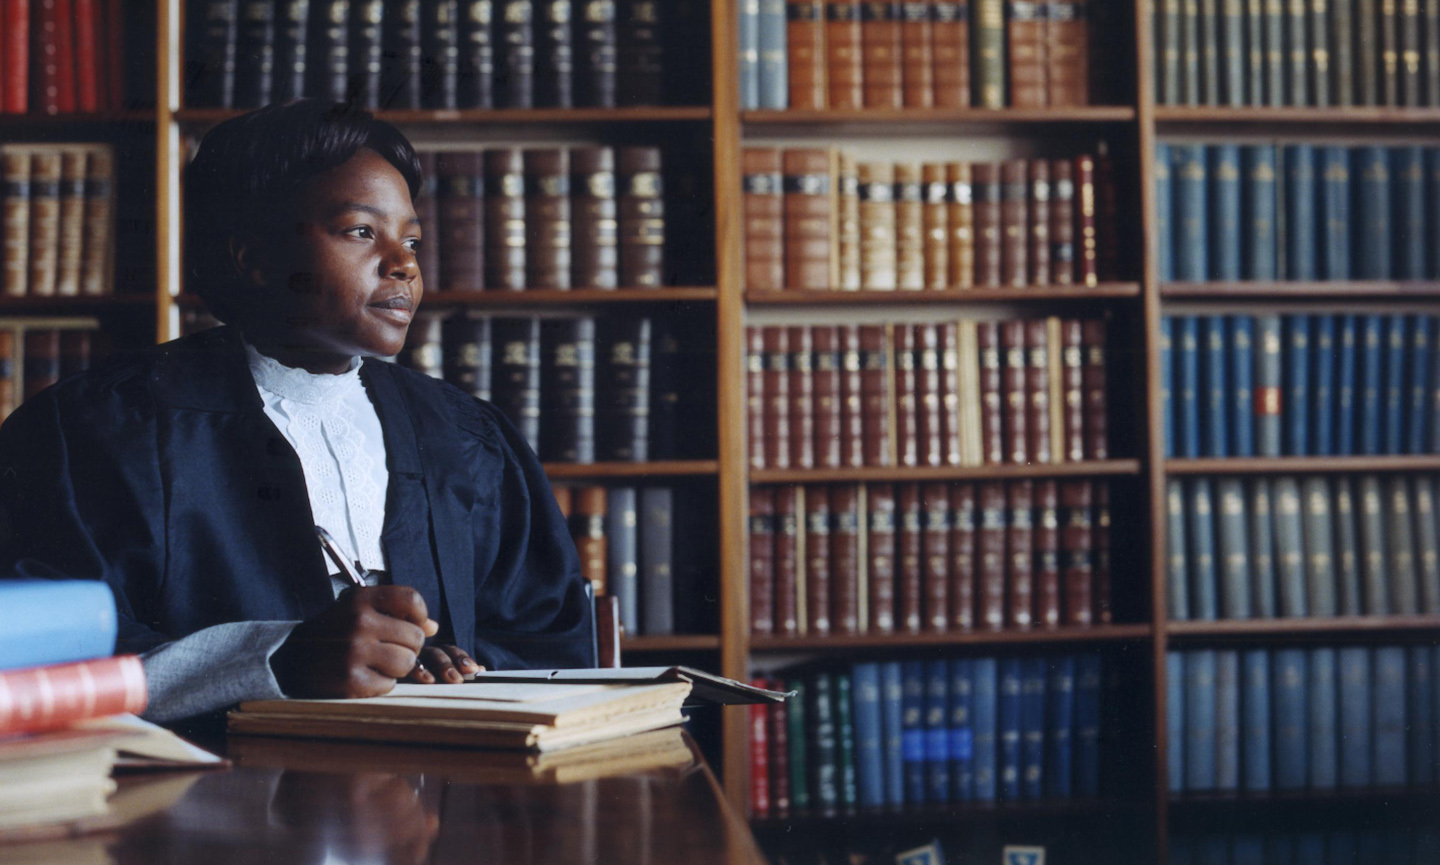 Fiona as a newly qualified lawyer in Harare